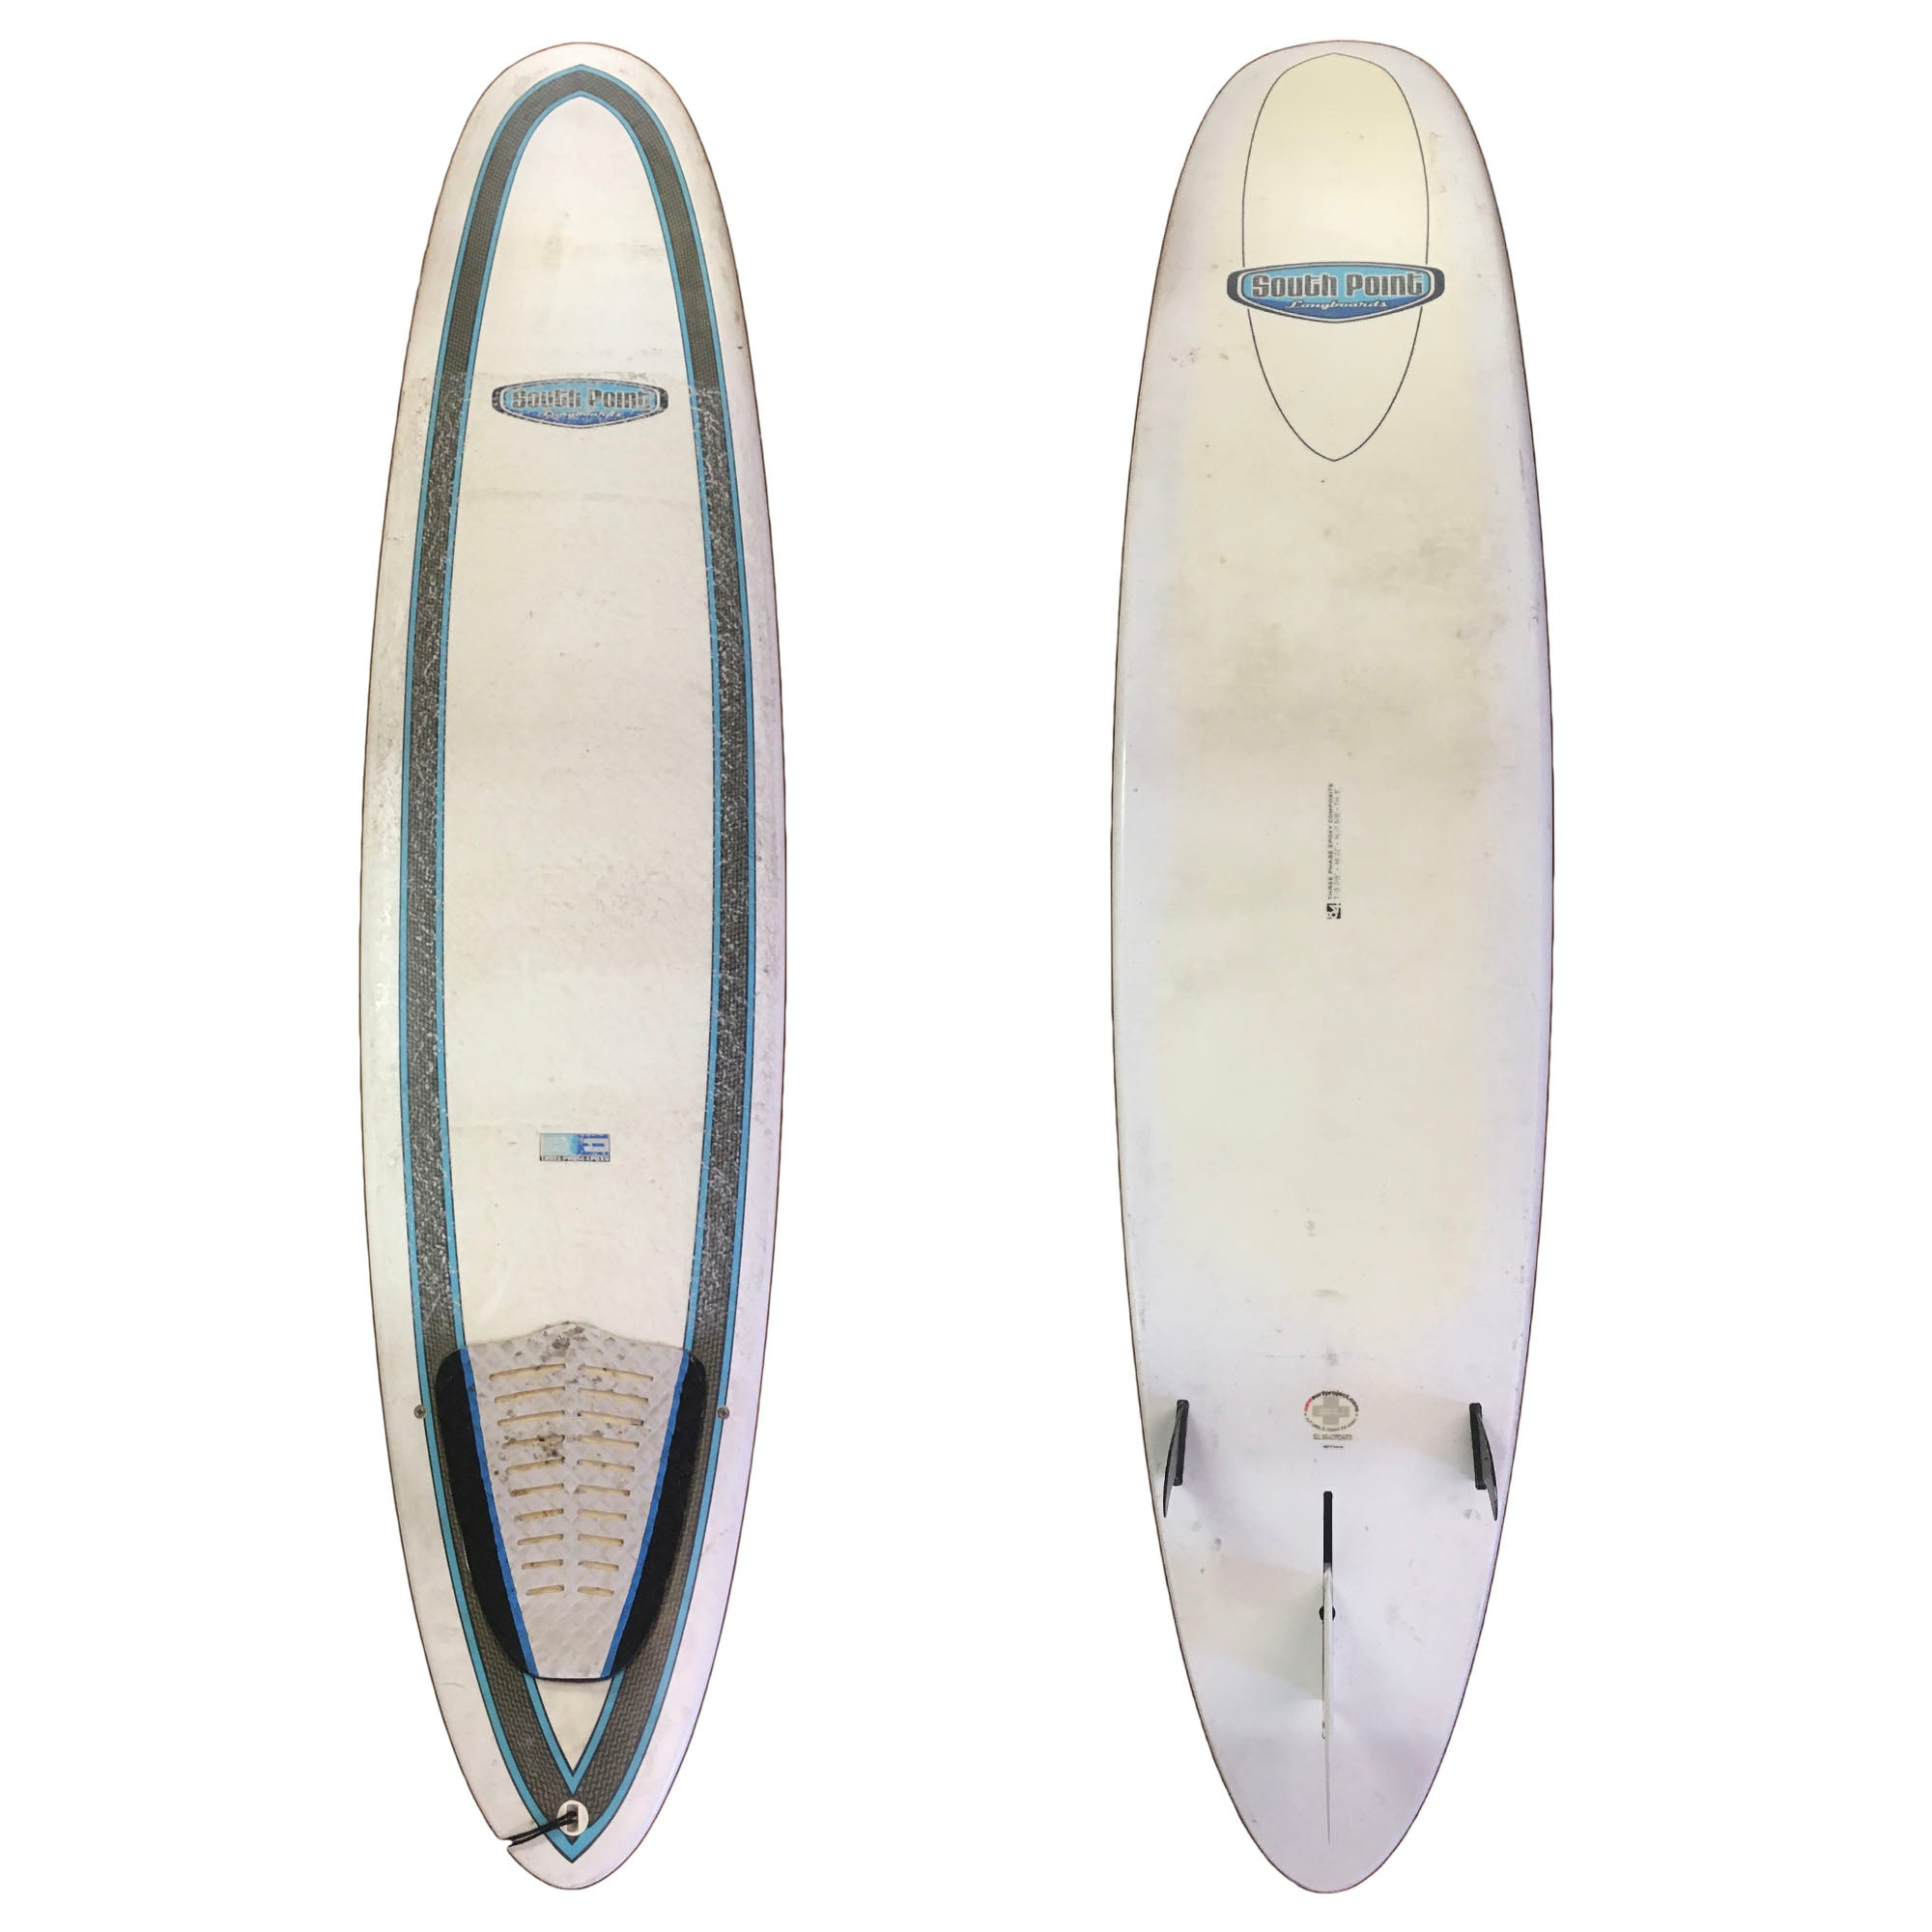 South Point 8'4 Used Surfboard